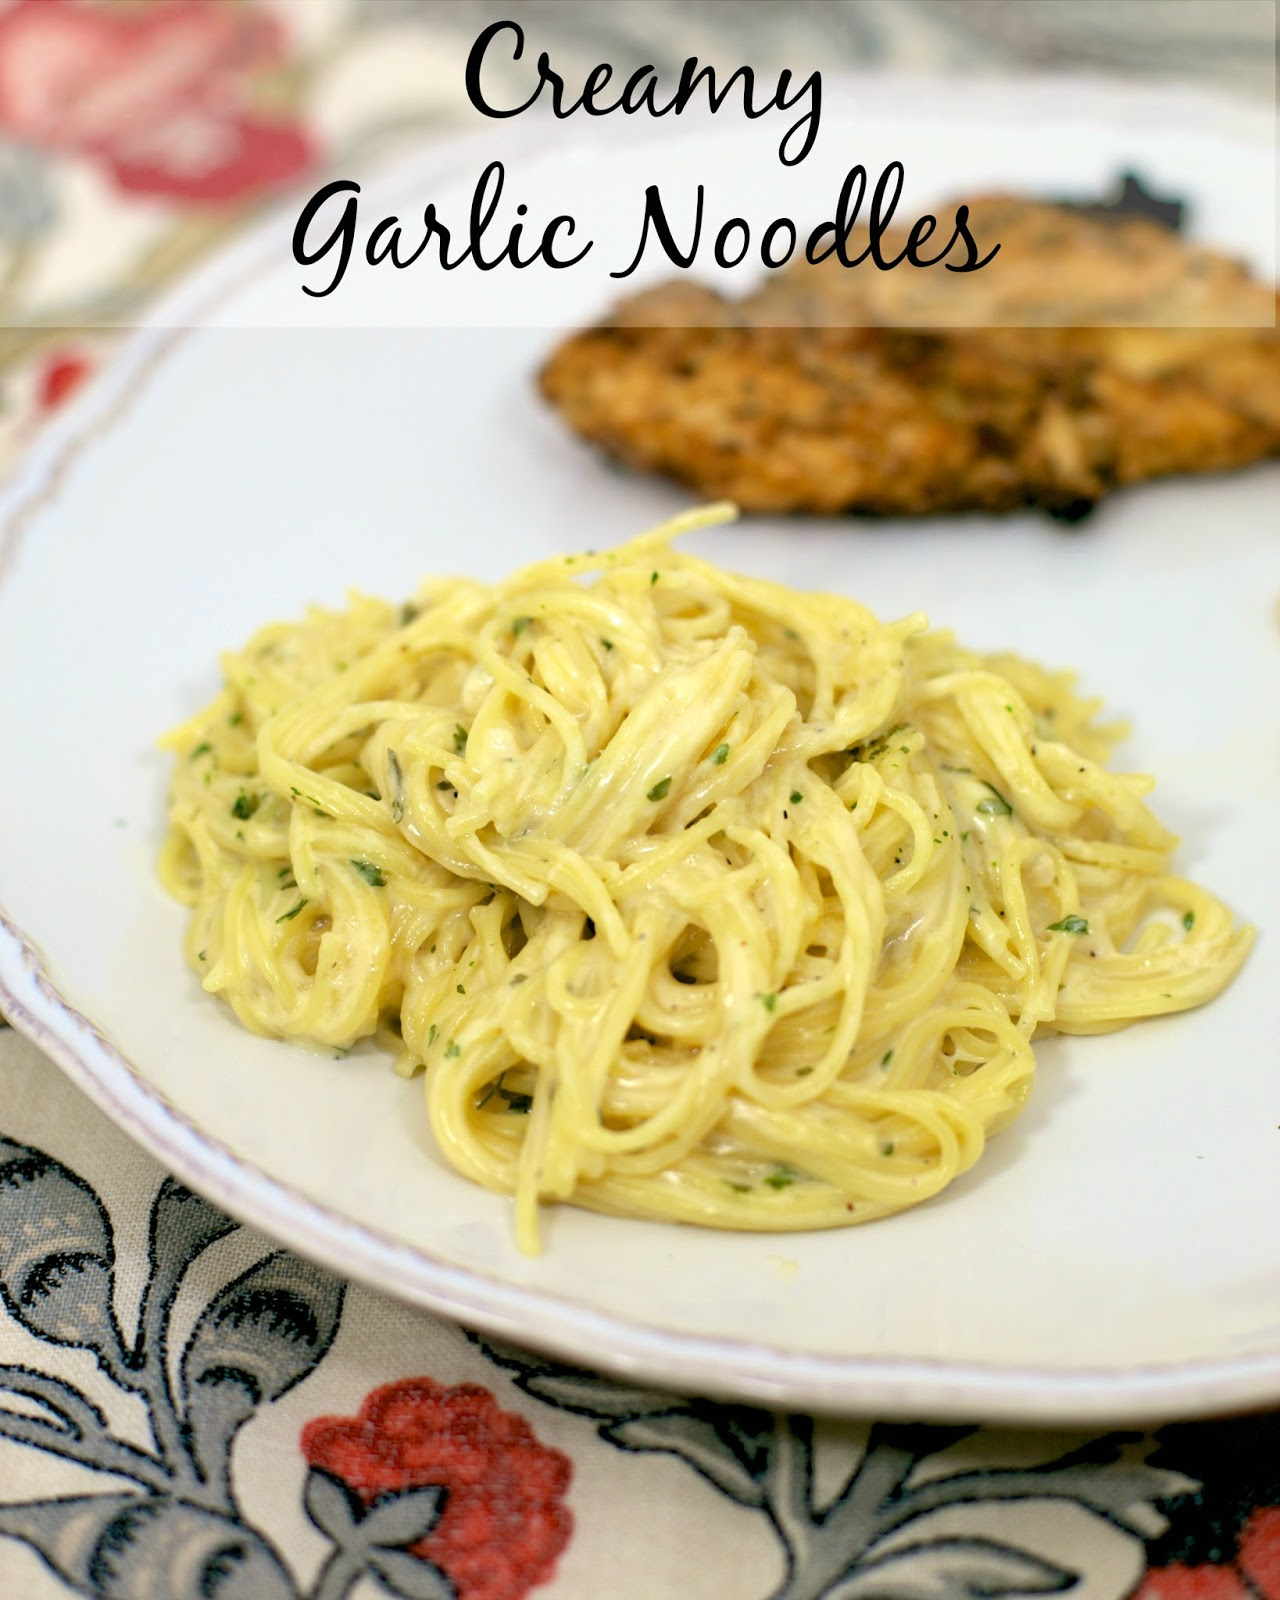 Creamy Garlic Noodles